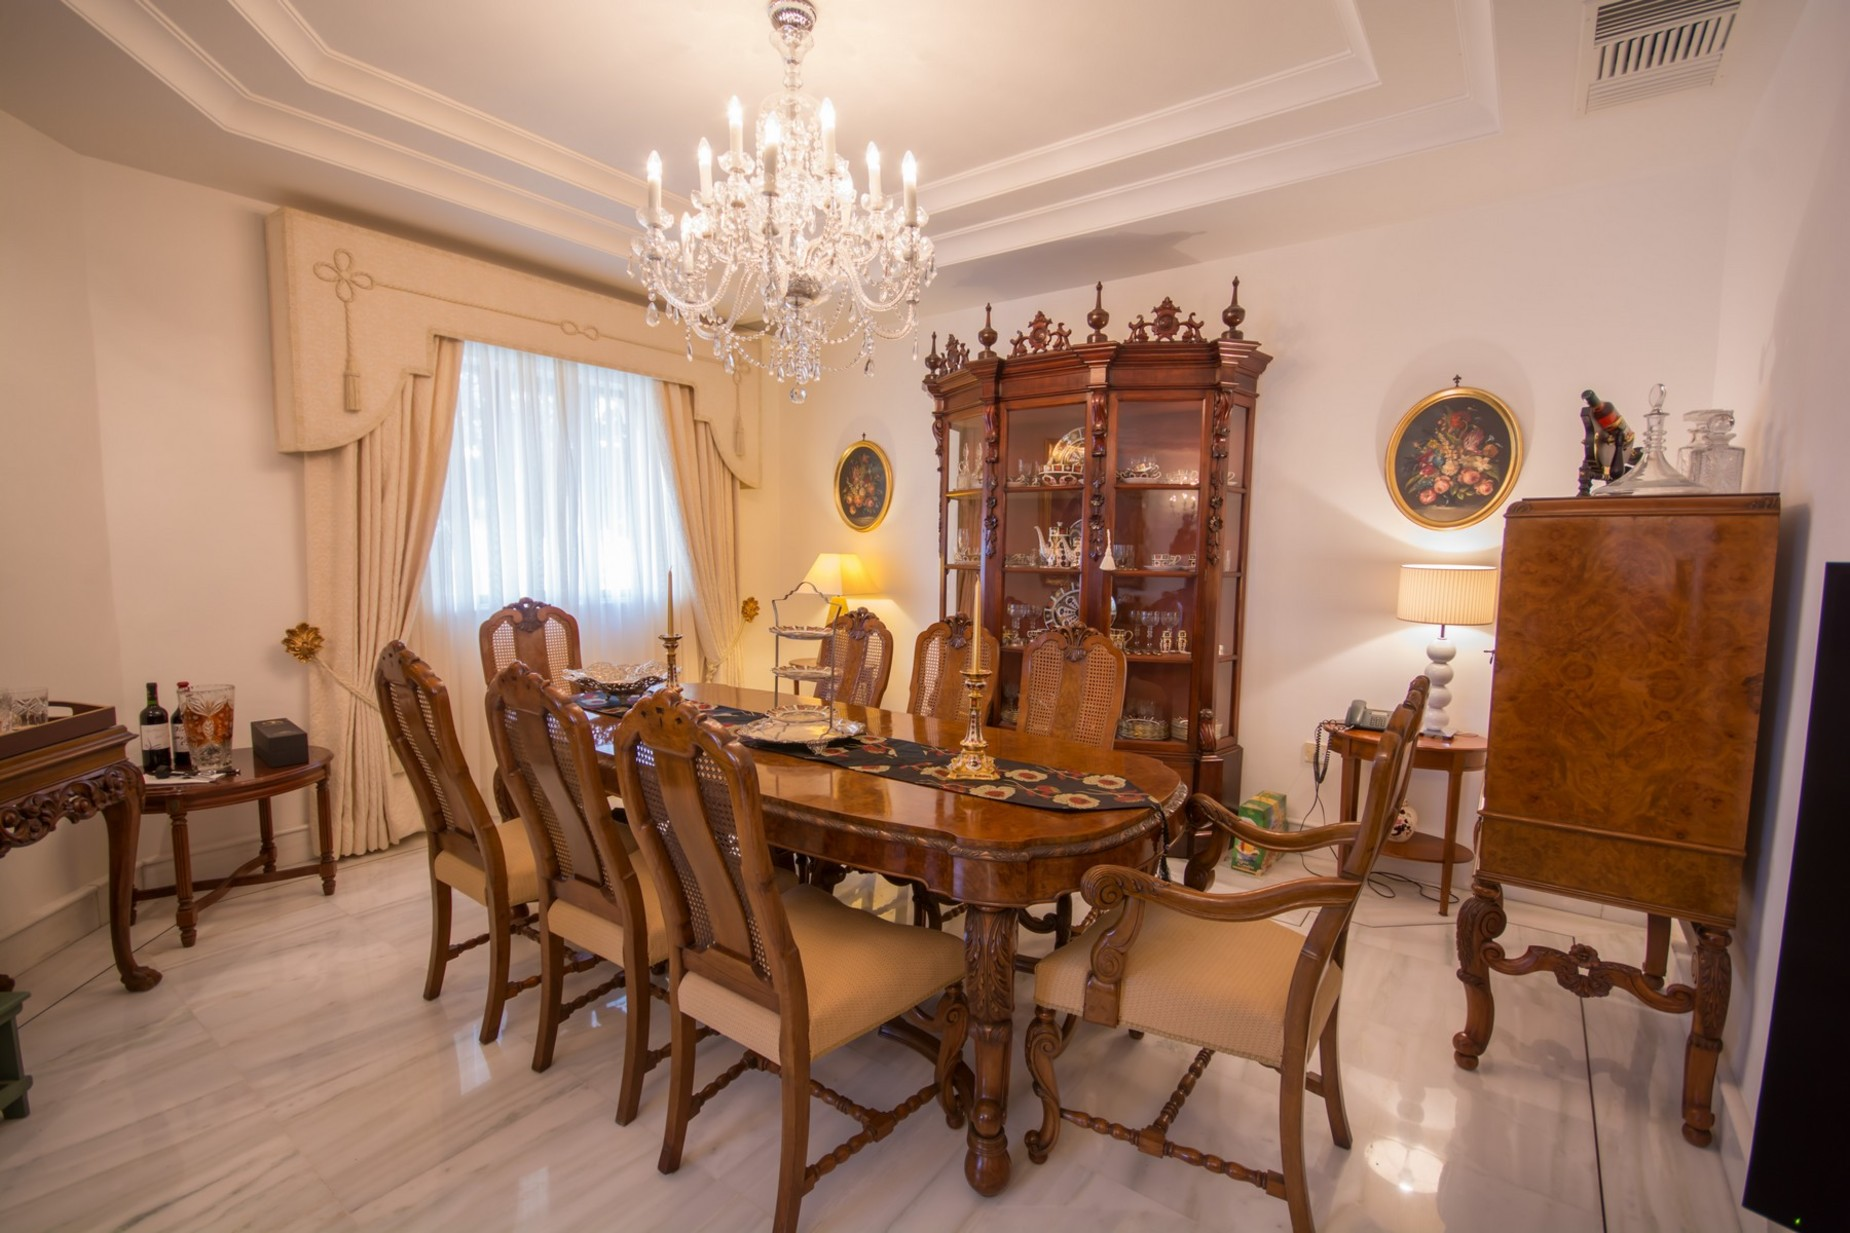 4 bed Villa For Sale in Rabat, Rabat - thumb 8